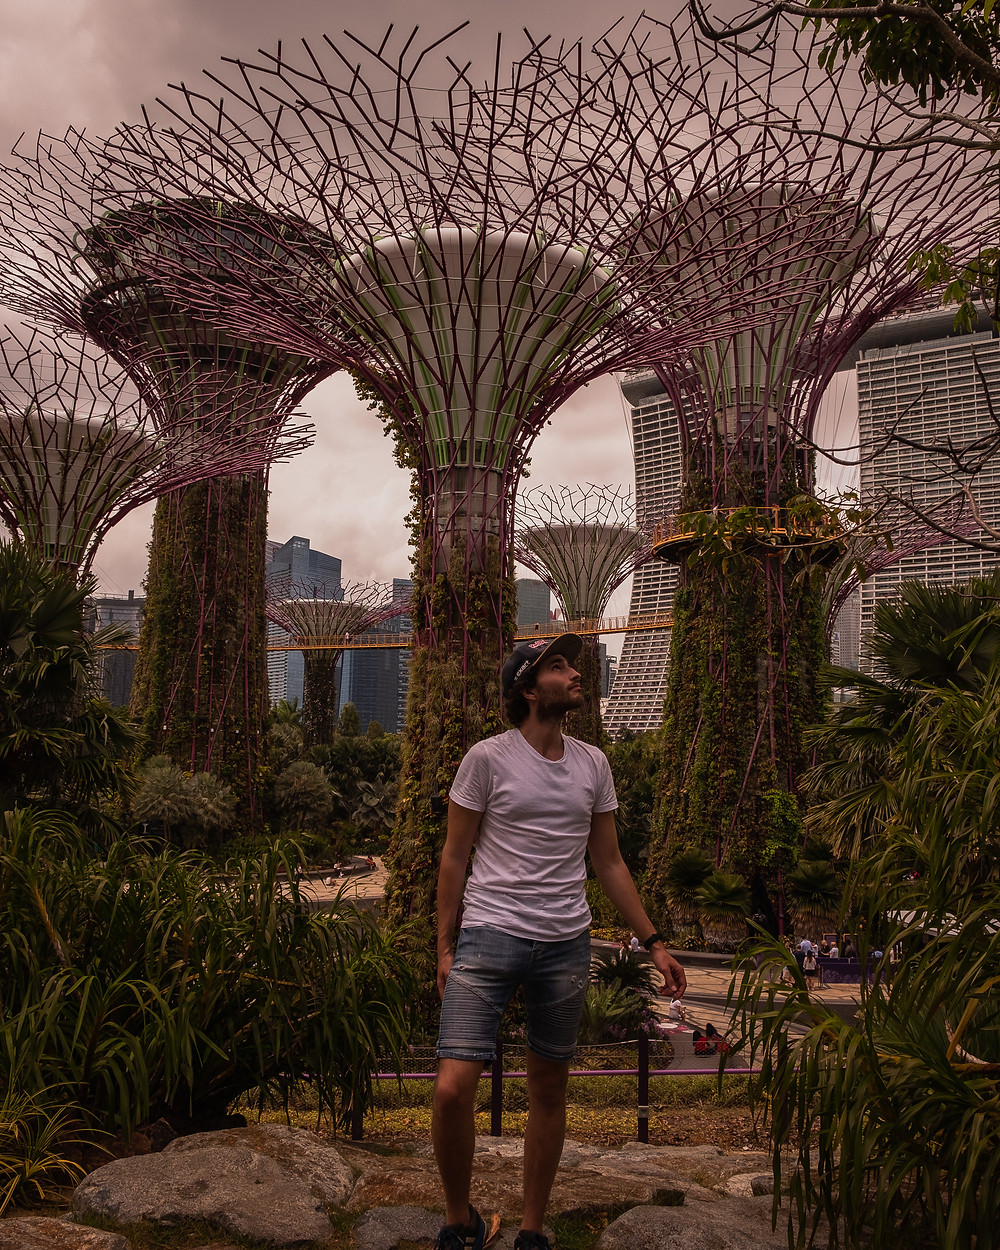 Instagrammable Singapore - Supertree Grove